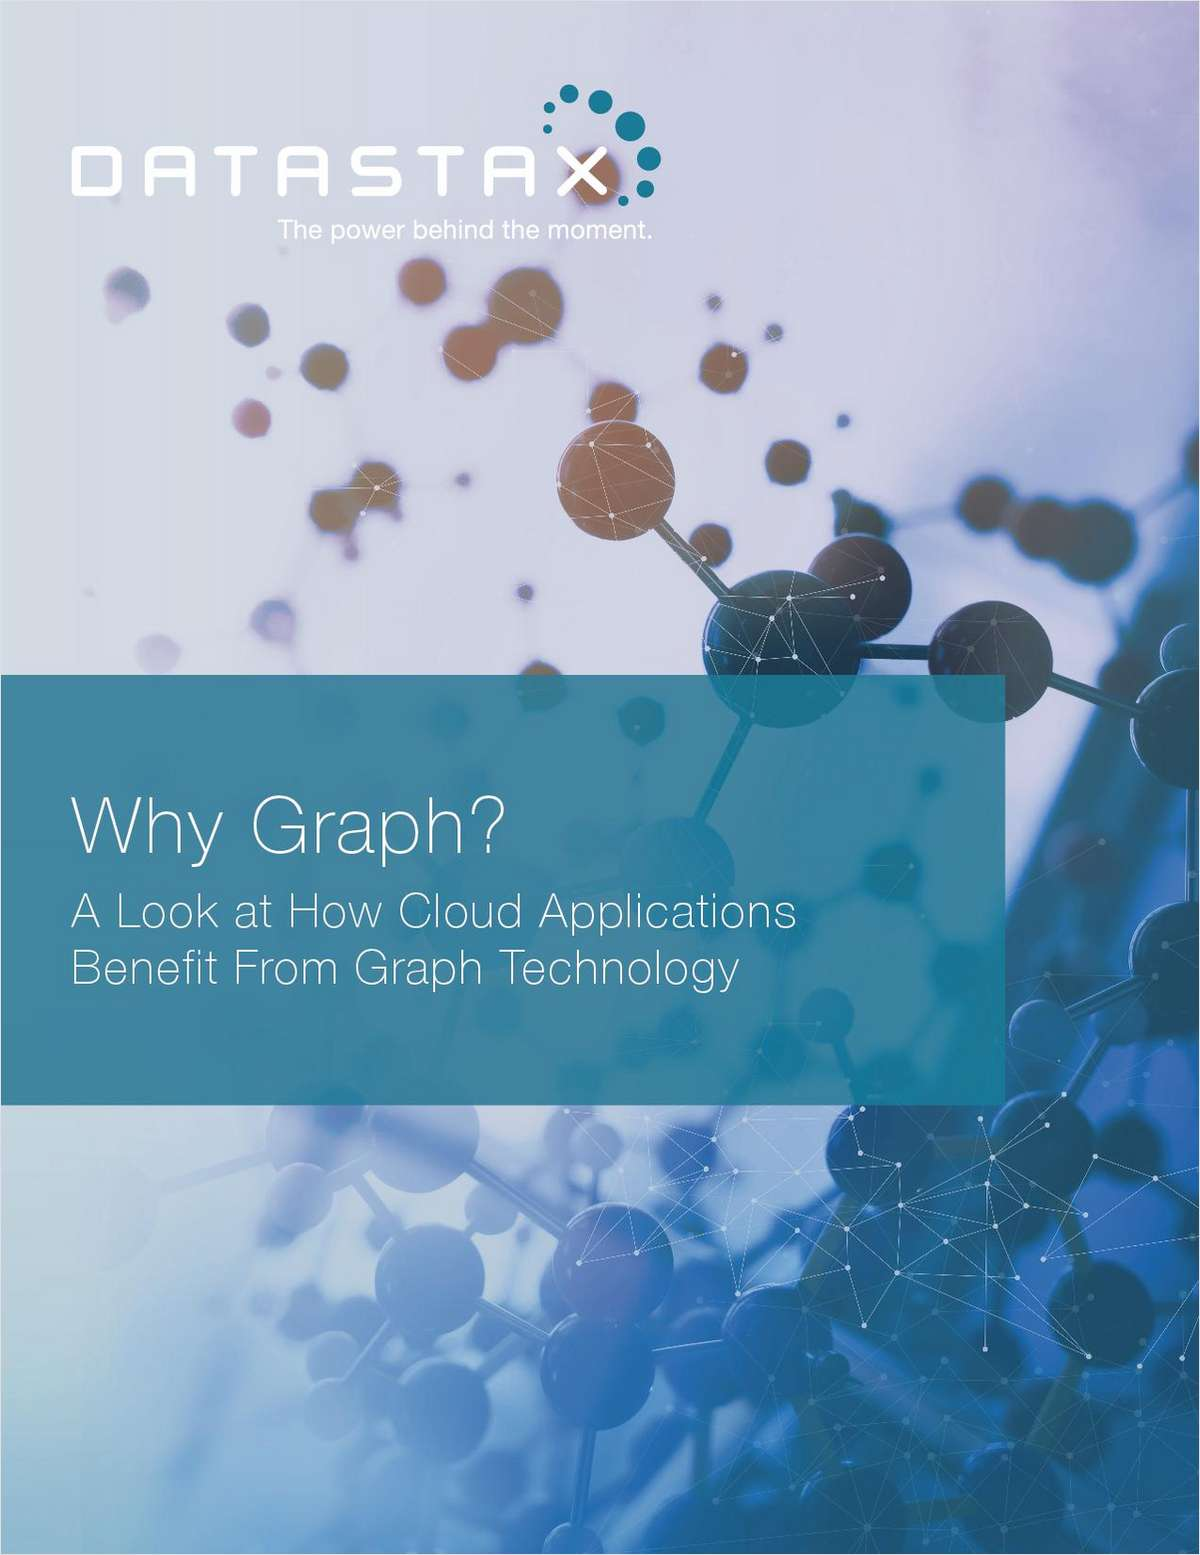 Why Graph?, Free DataStax White Paper